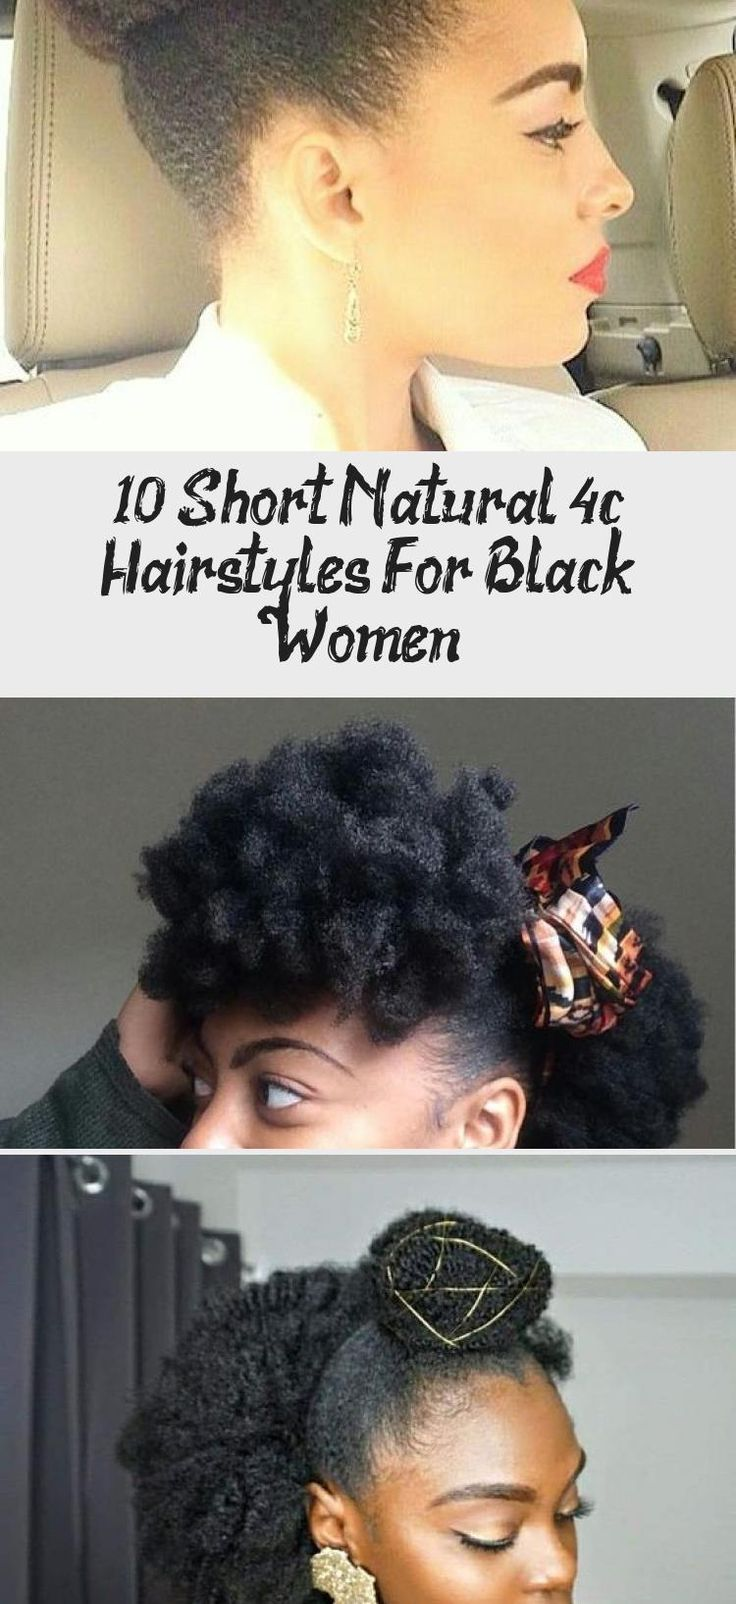 10 Short Natural 4c Hairstyles For Black Women in 2020 ...